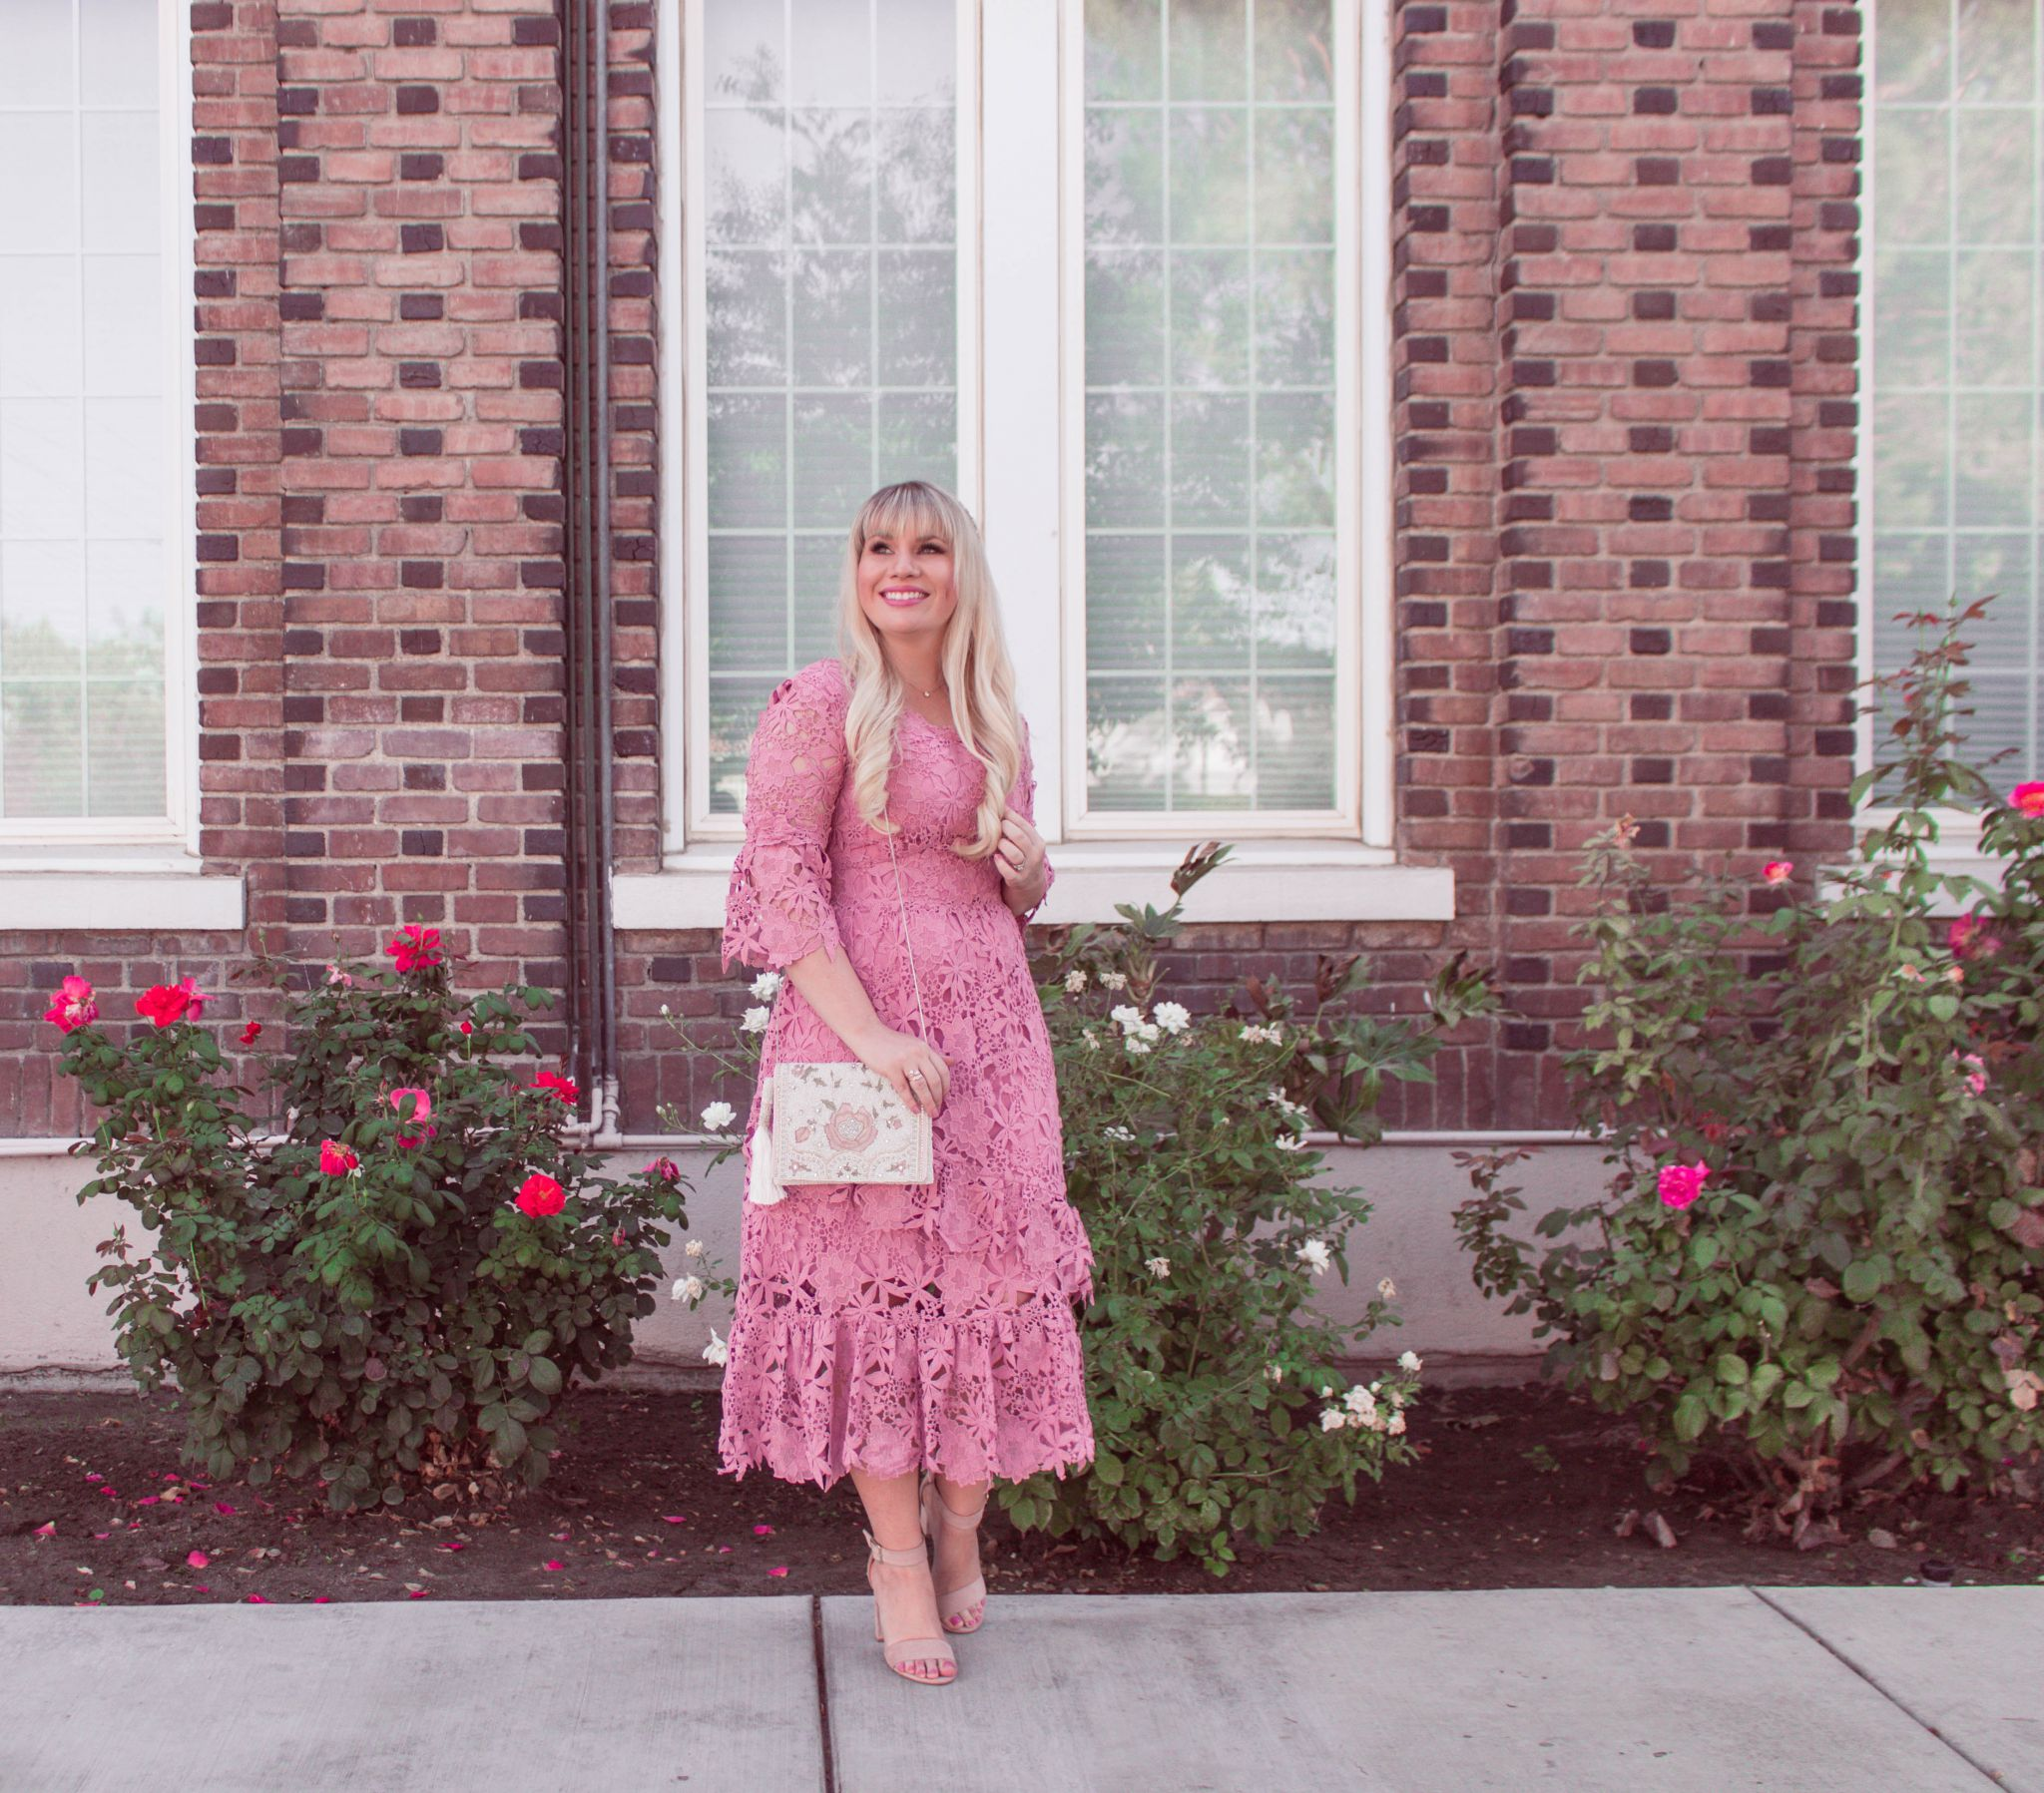 On Wednesdays We Wear…A Pink Lace Dress